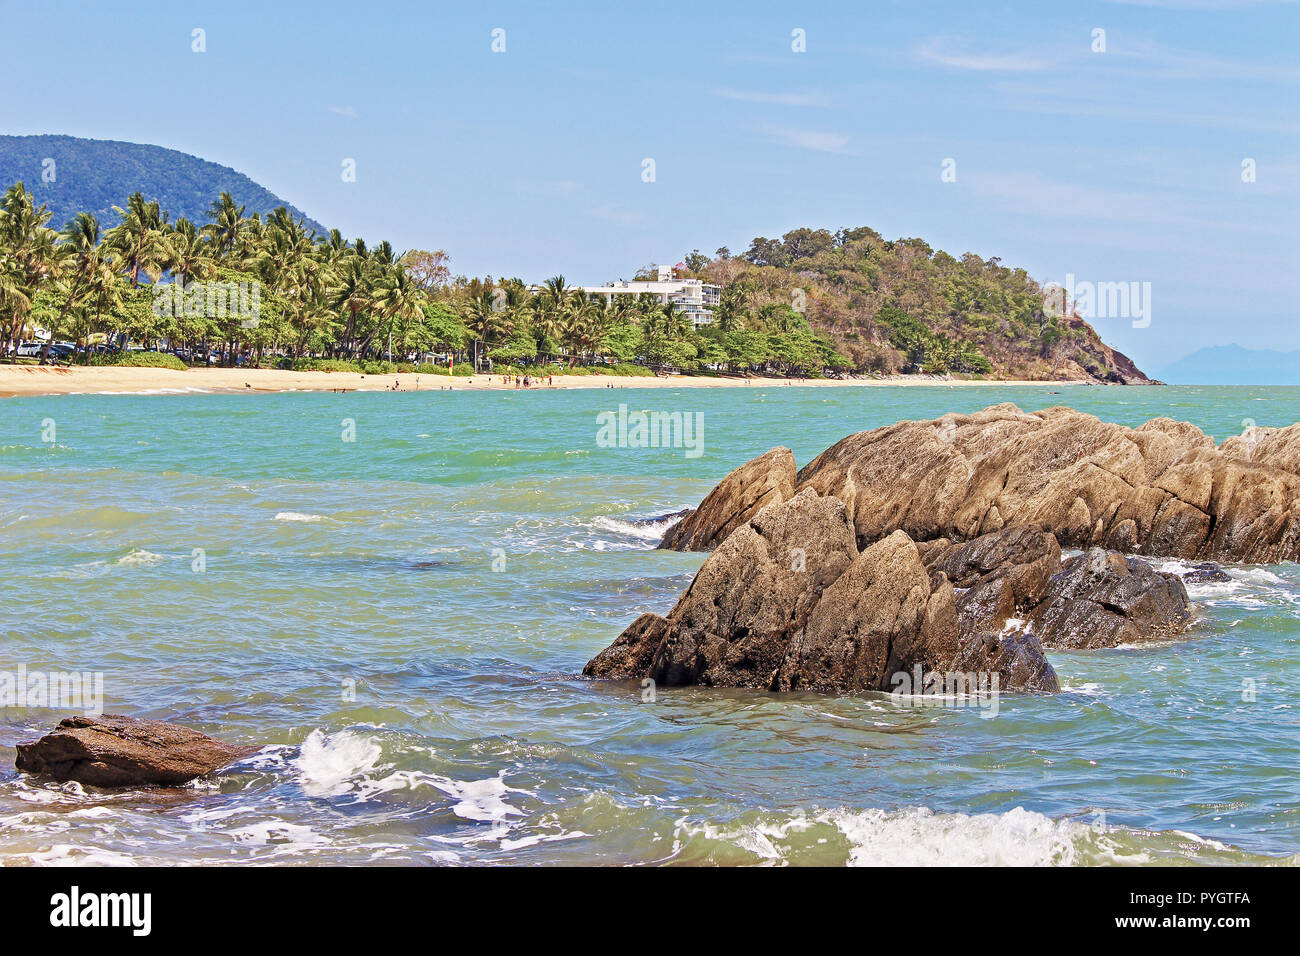 The view across the cove to the beach and headland in Trinity Beach, one of the northern beaches in Cairns QLD Australia - Stock Image